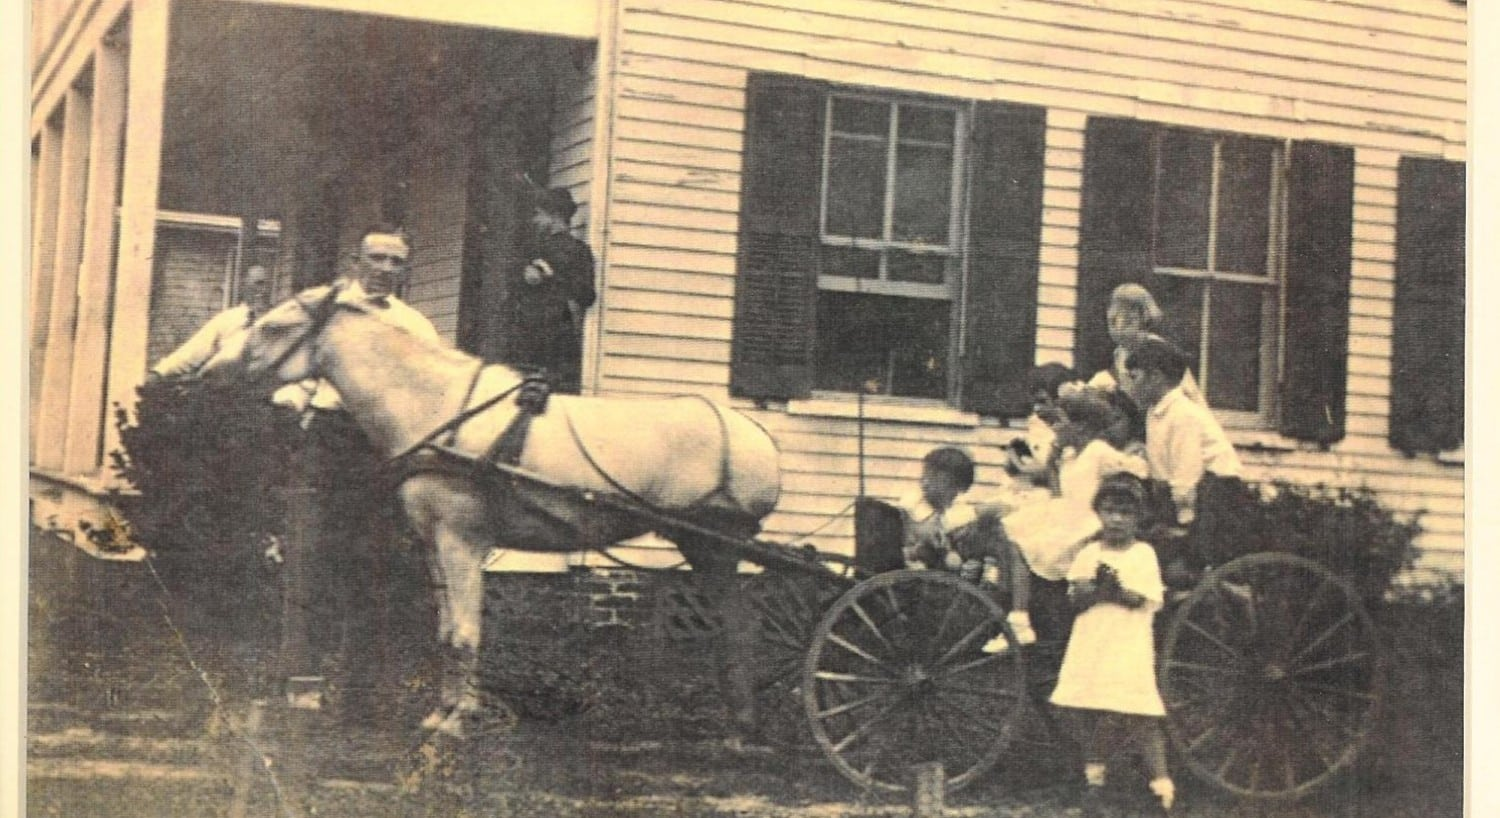 Vintage photo of a family in a horse-drawn buggy pulling up to a porch of a white house.